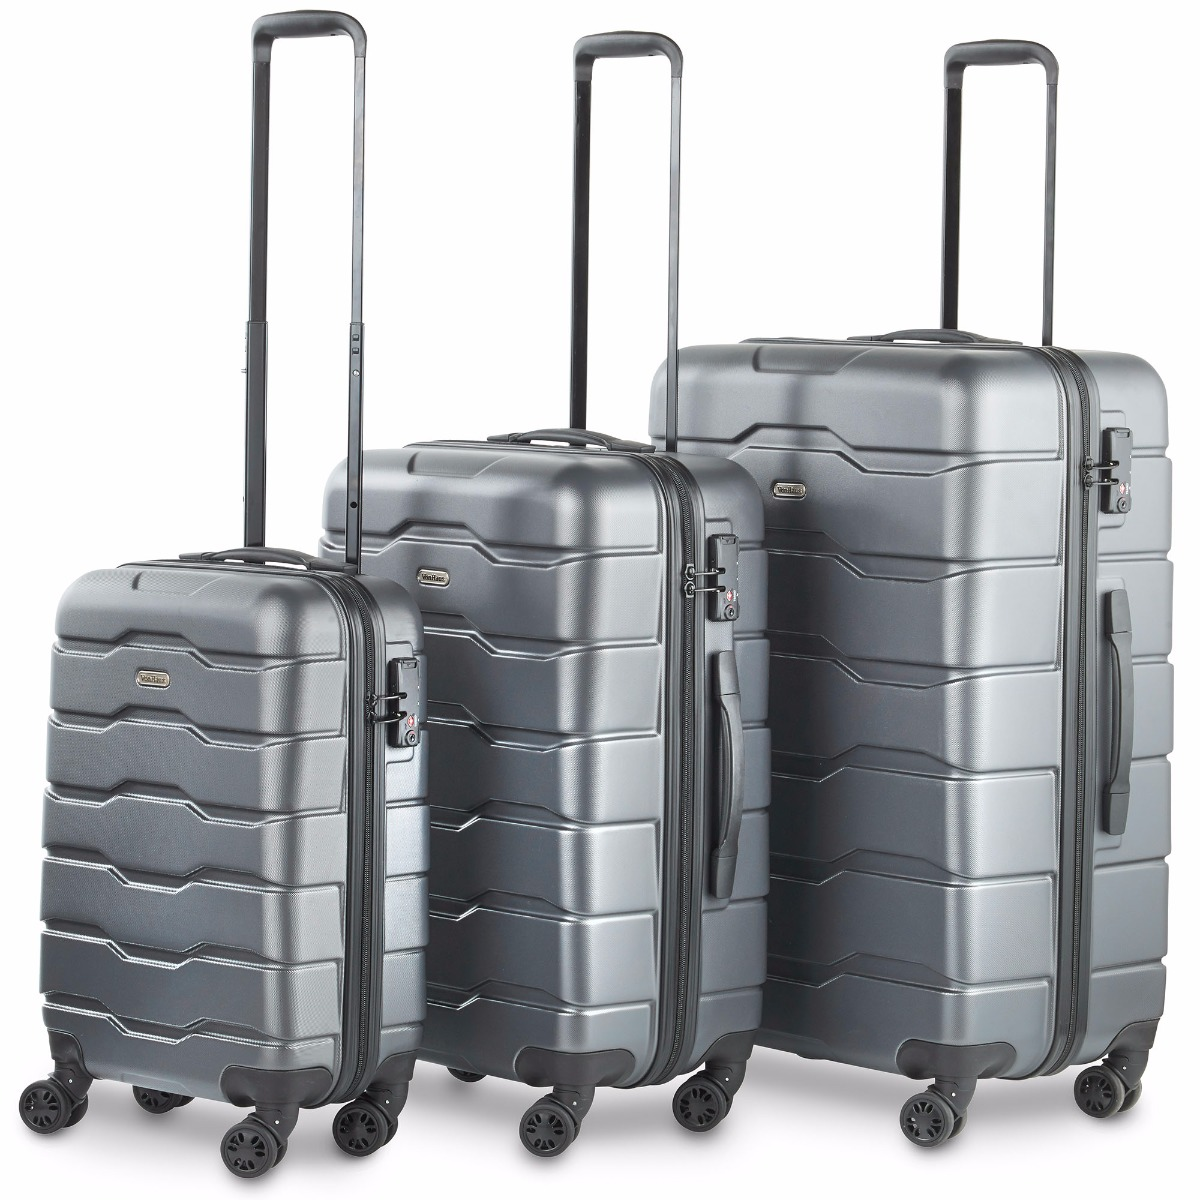 VonHaus Premium Gray 3 Piece Lightweight Travel Luggage Set - Hard Shell Suitcase with 4 Spinner Wheels, TSA Integrated Lock, Extendable Handle - Small, Medium and Large